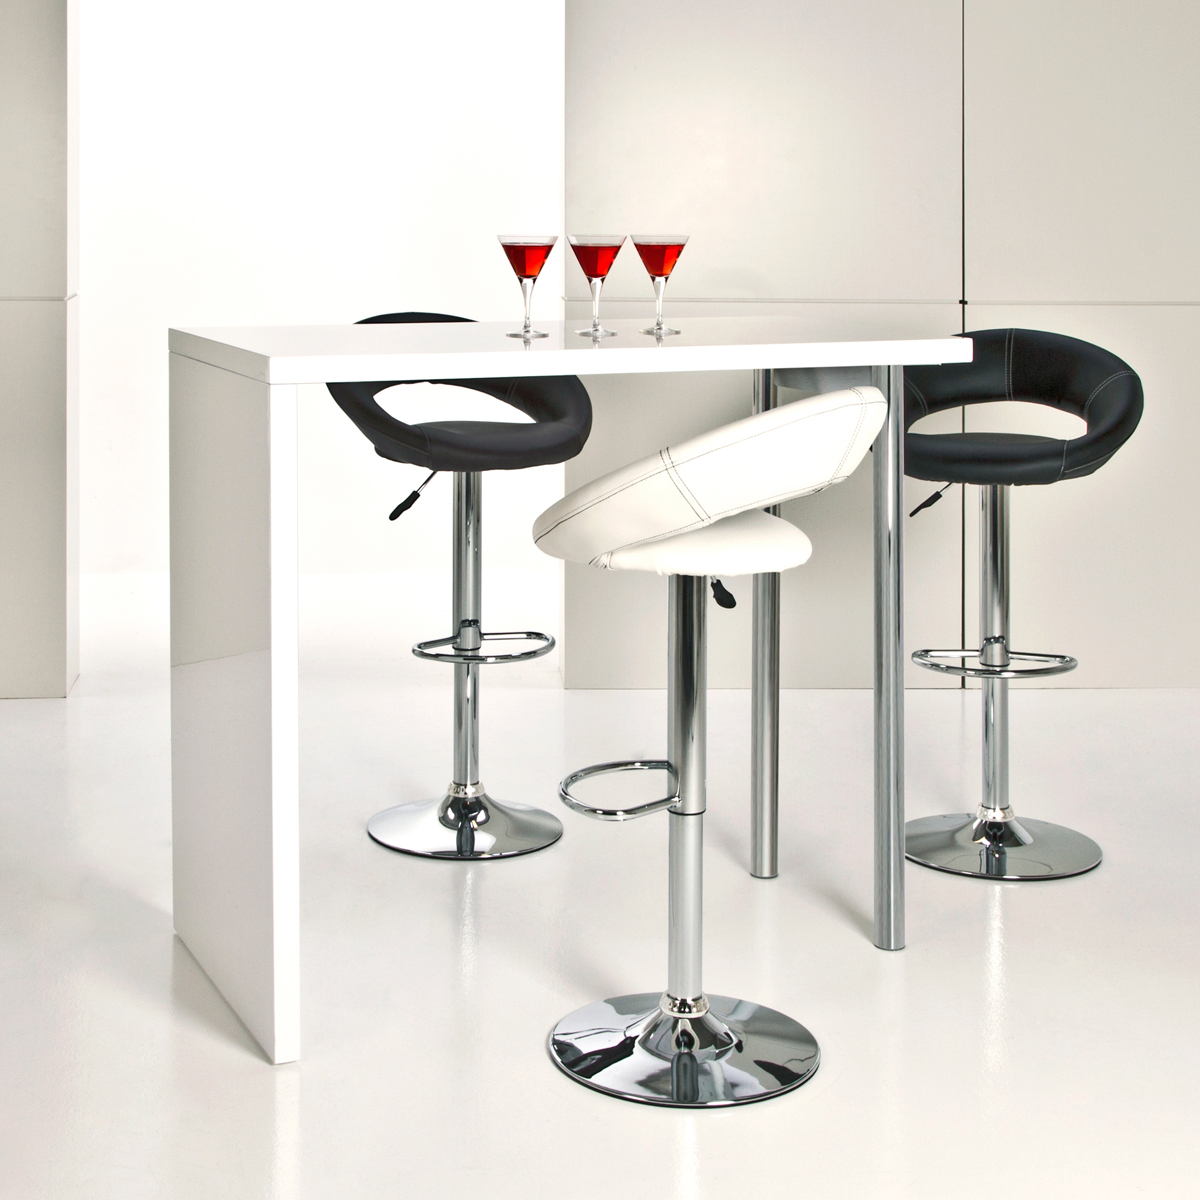 bartisch budgie hochtisch tisch in wei hochglanz chrom 120 cm ebay. Black Bedroom Furniture Sets. Home Design Ideas